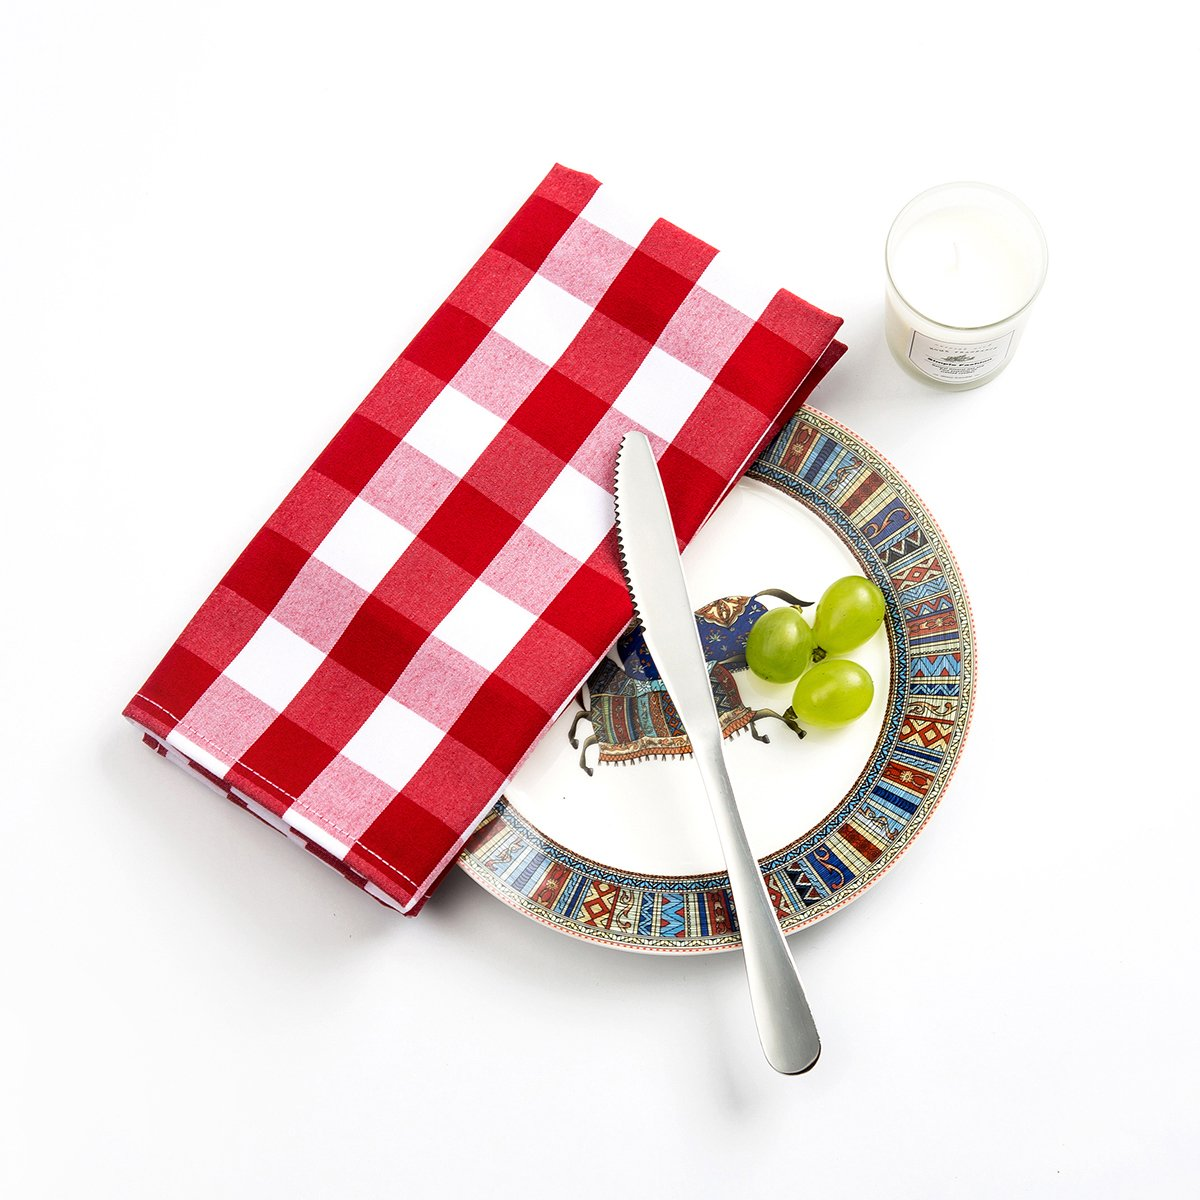 Beely Red-White Gingham Check Cloth Dinner Napkins - Set of 6 Pieces (20 x 20 inches),Five-Star Premium Dinner Napkins,Soft and Durable,Perfect for Parties,Weddings,Cocktail, Birthday or Everyday Use